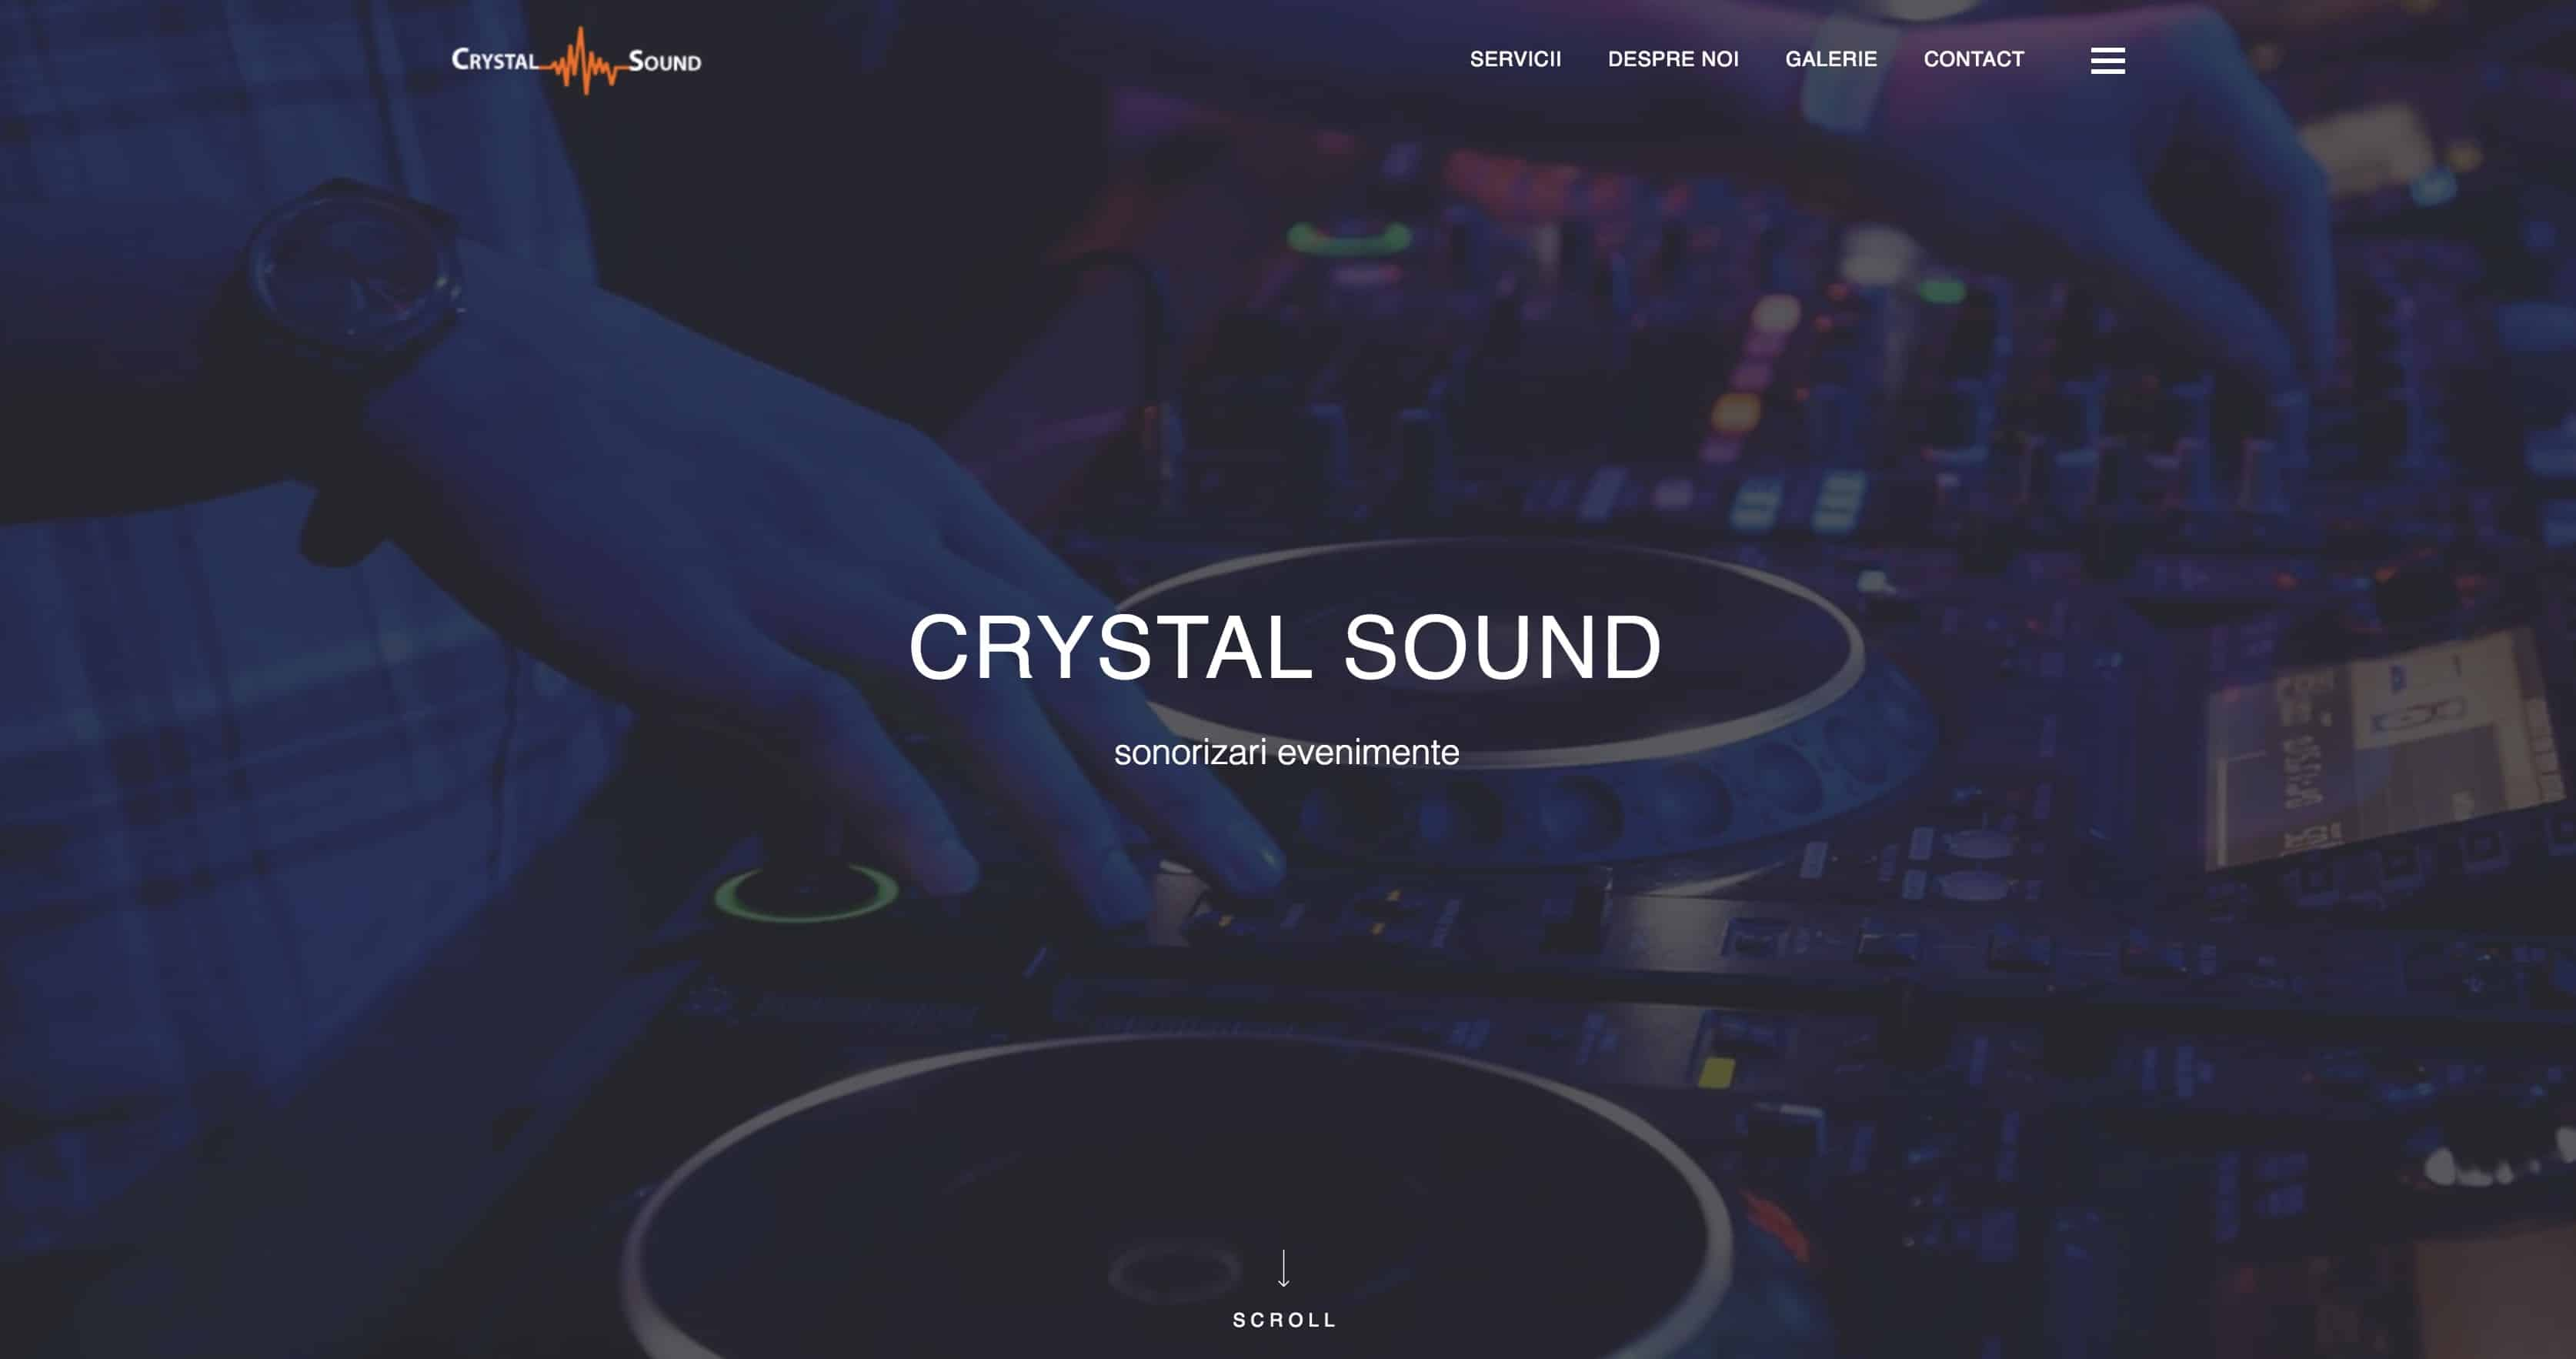 CleanPC Zalau CrystalSound Web Design